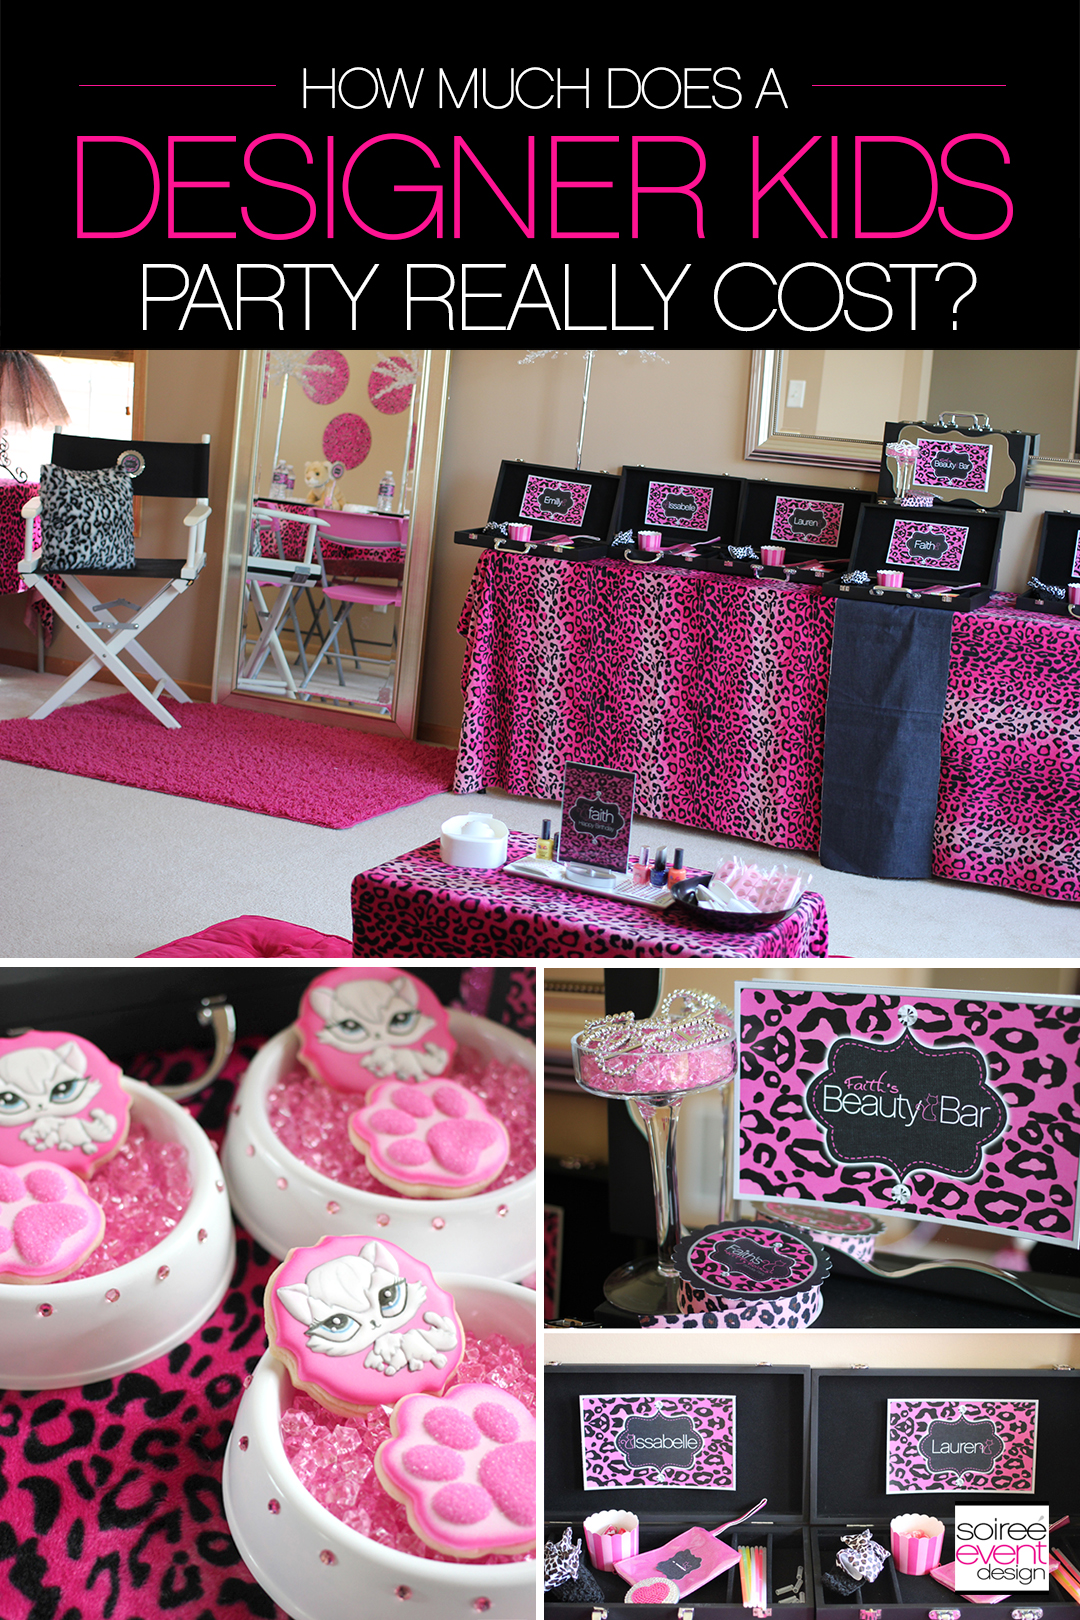 How much does a designer kids party REALLY cost?